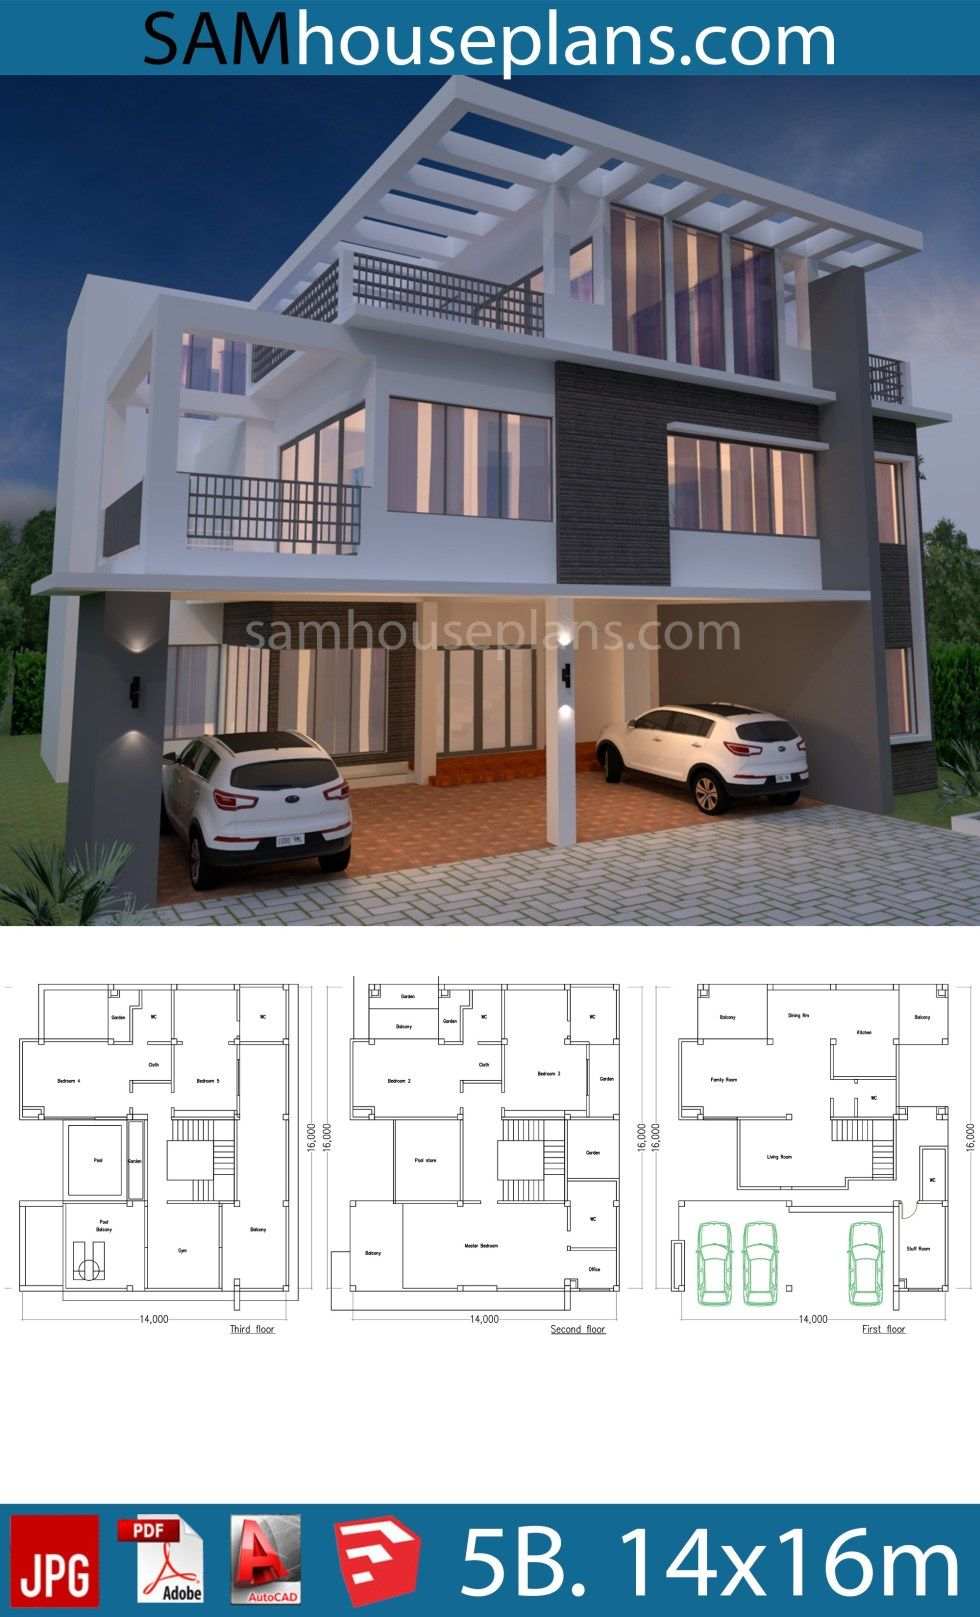 House Plan 14x16m With 5 Bedrooms Sam House Plans Building Plans House Duplex House Design House Construction Plan